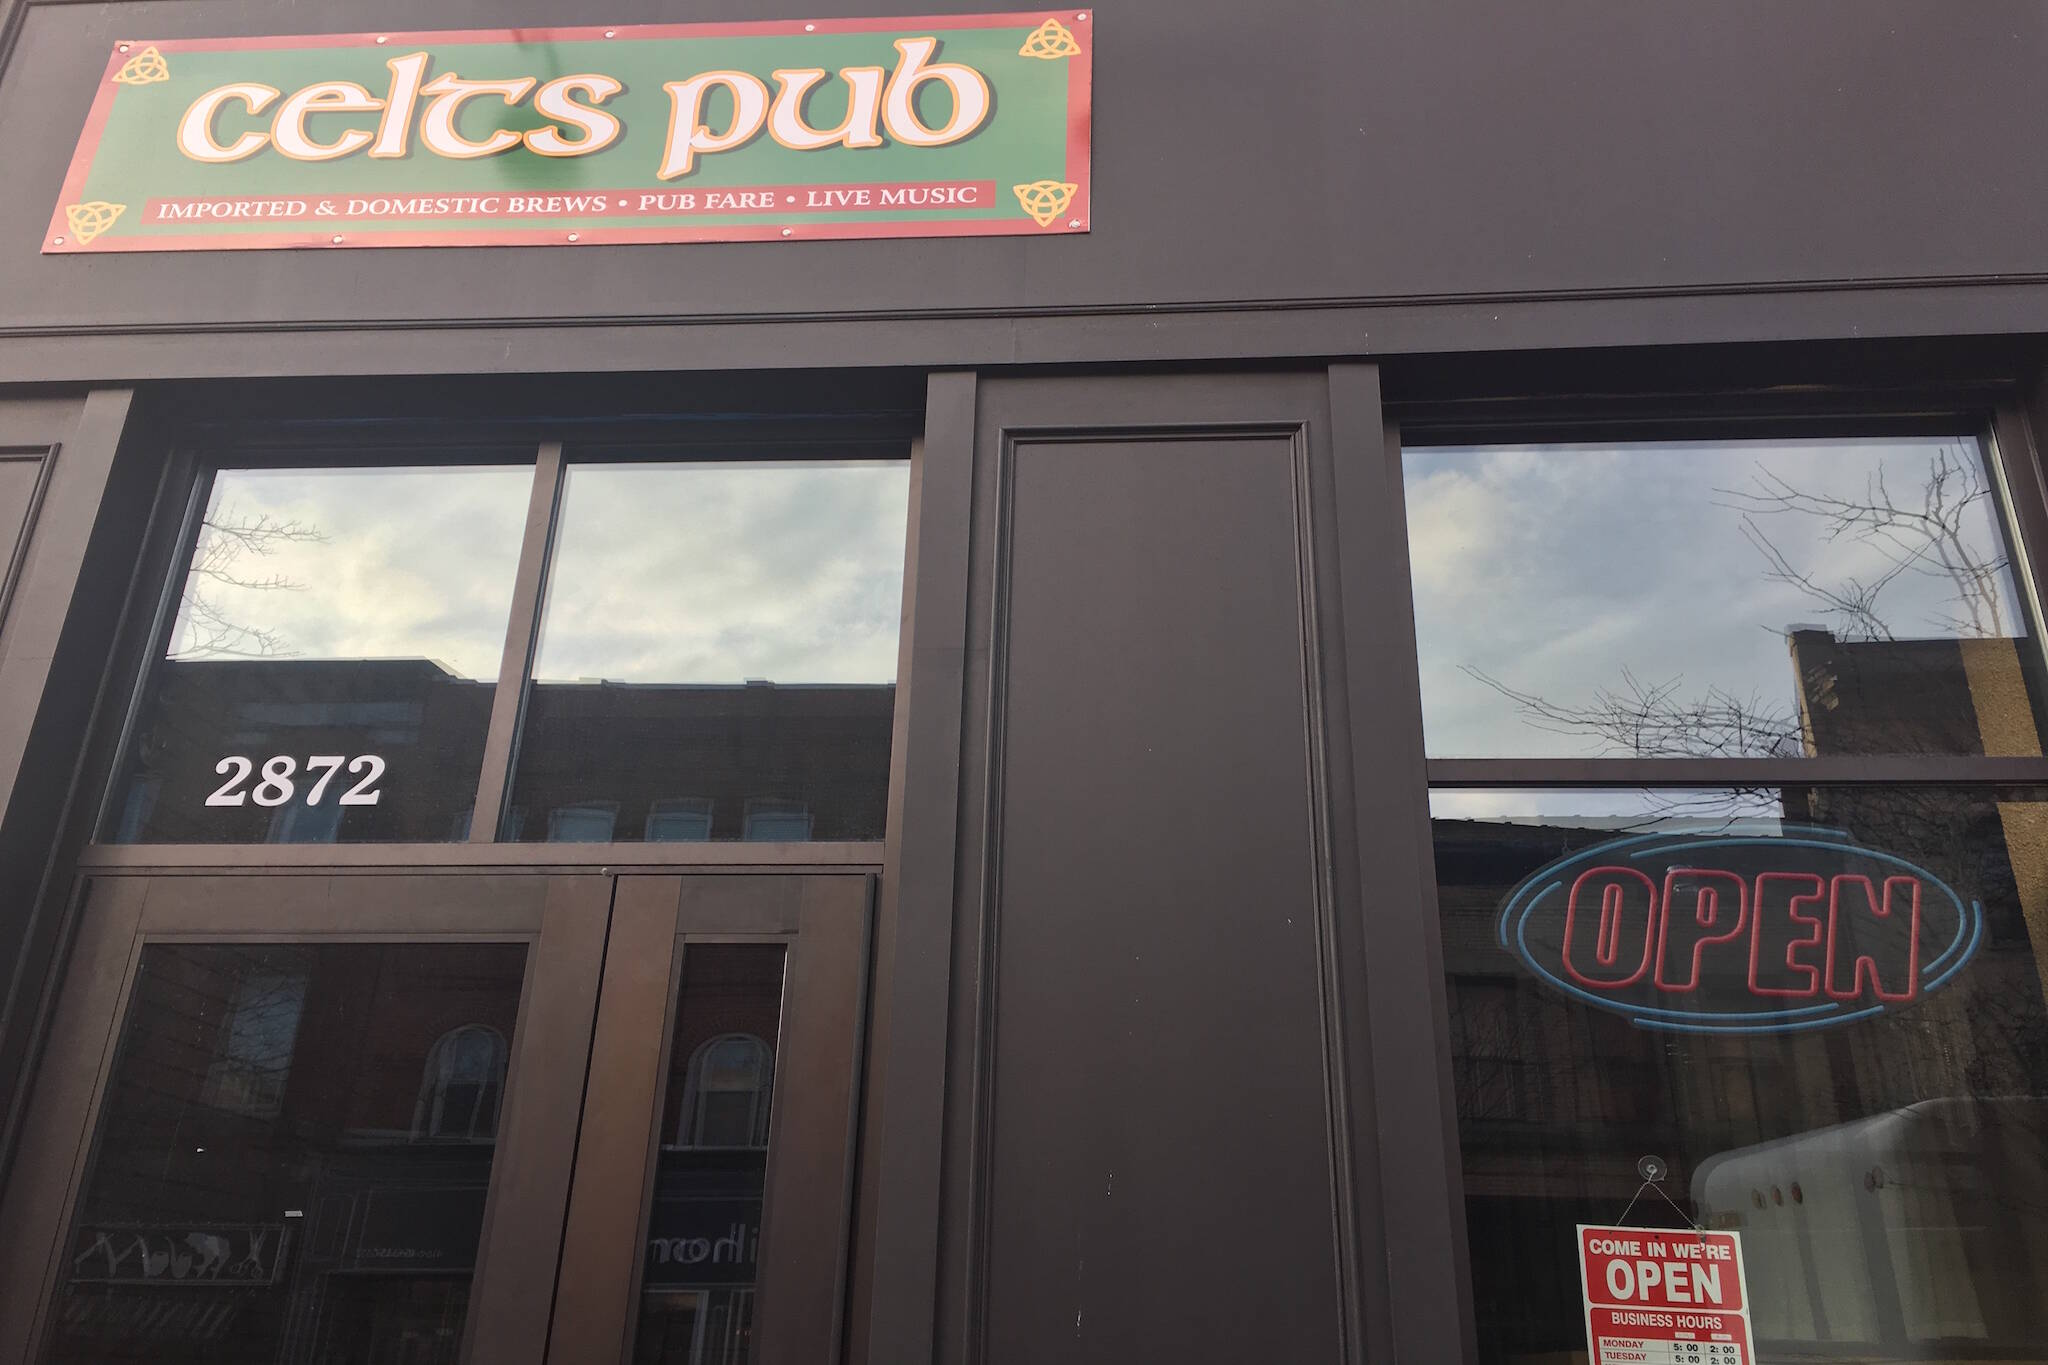 Celts Pub Toronto